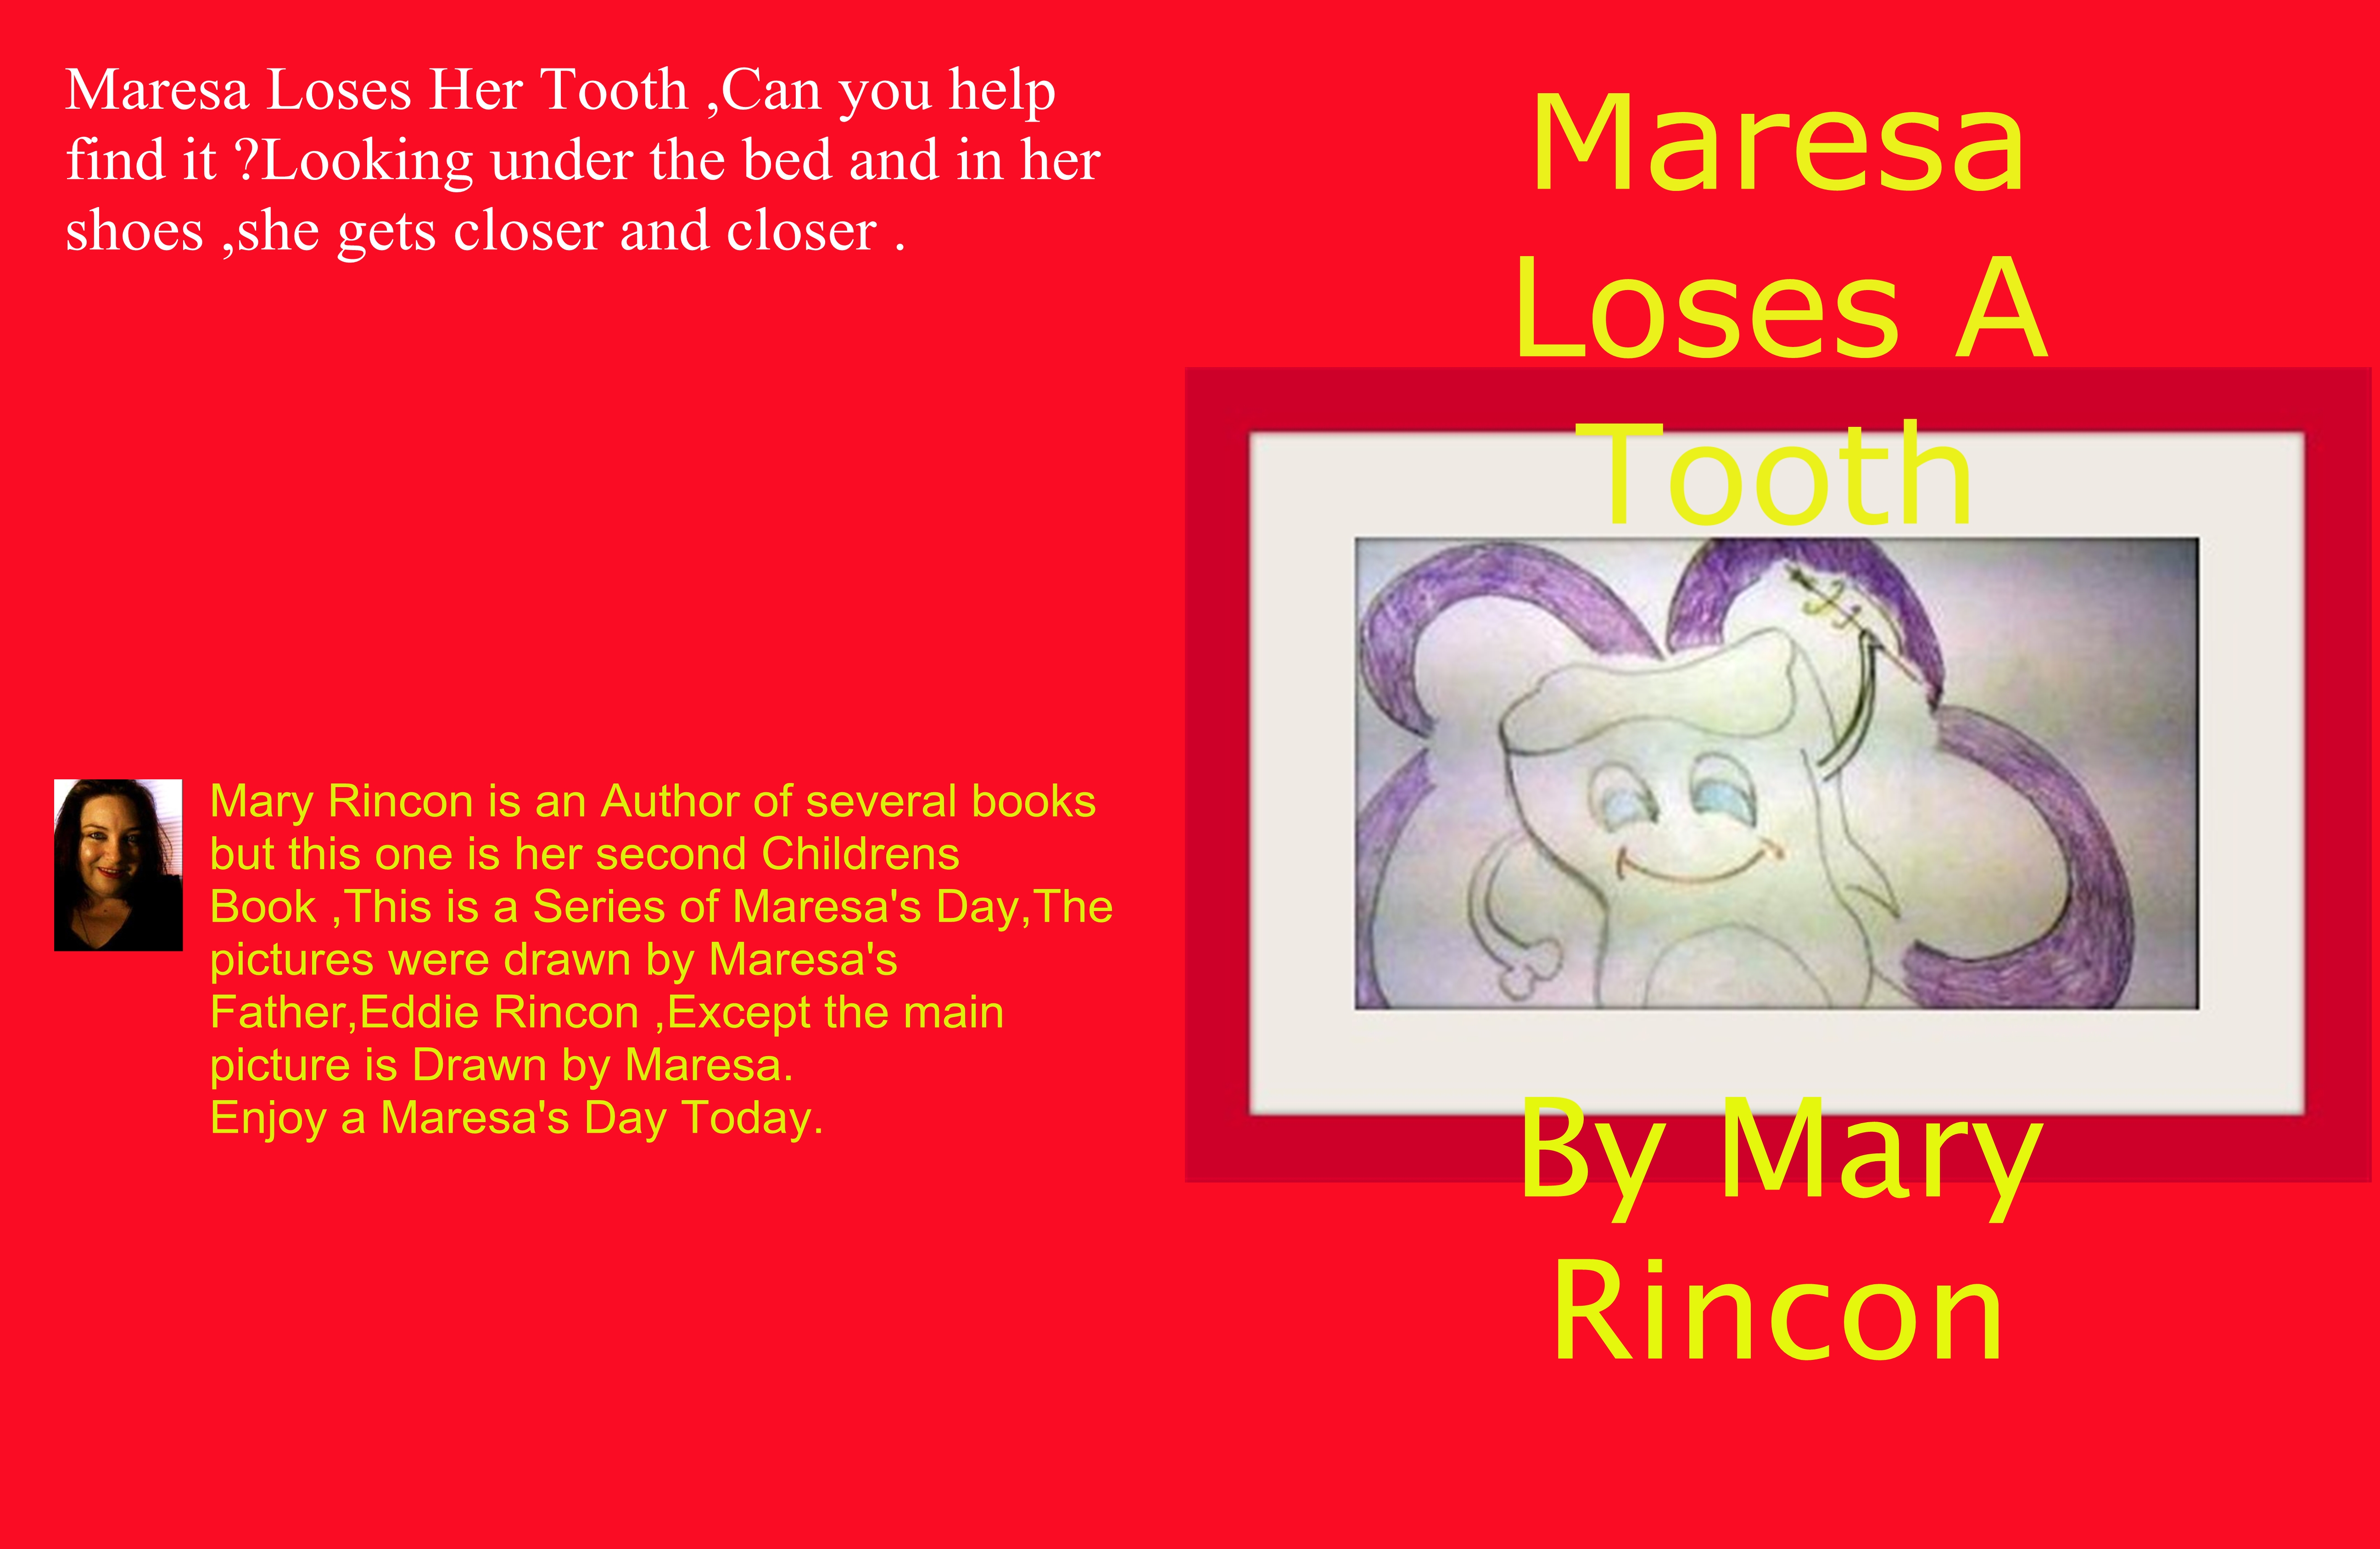 Maresa Loses A Tooth cover image